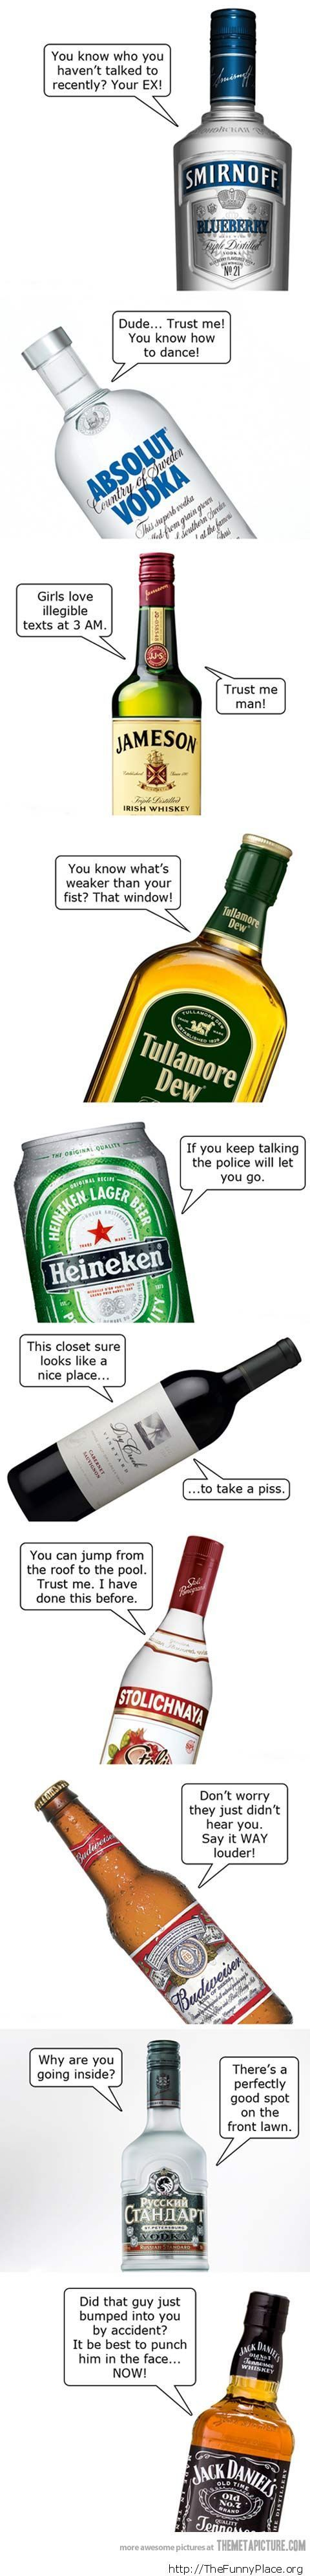 If my bottle could talk